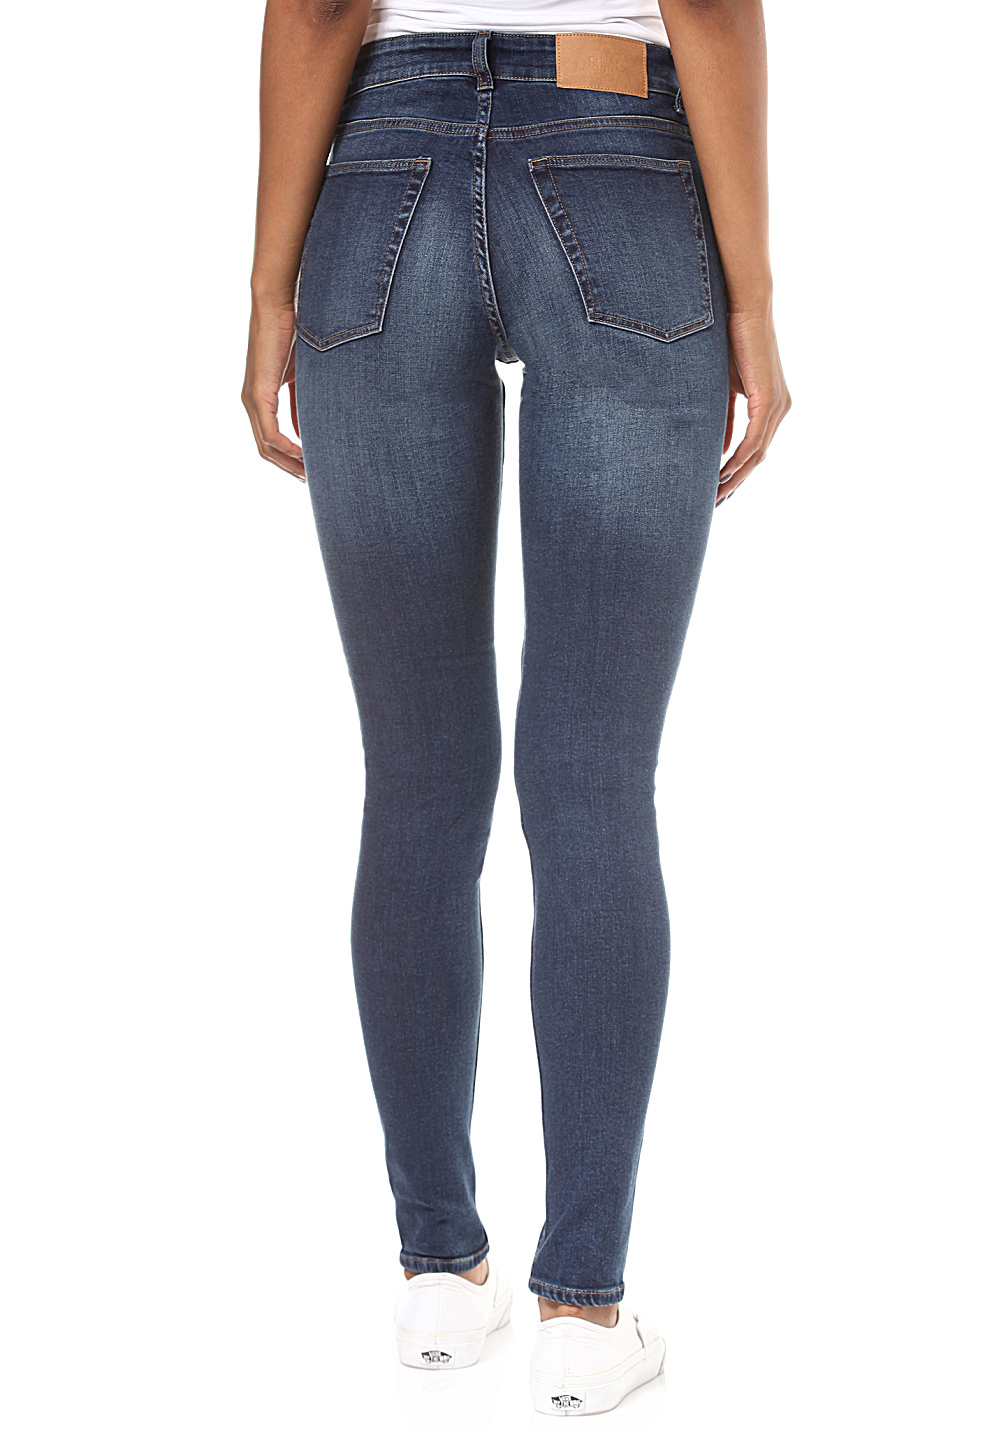 3d4829f6255 Next. -10%. Cheap Monday. Low Skin - Denim Jeans for Women. Regular Price   Save 10% €49.95